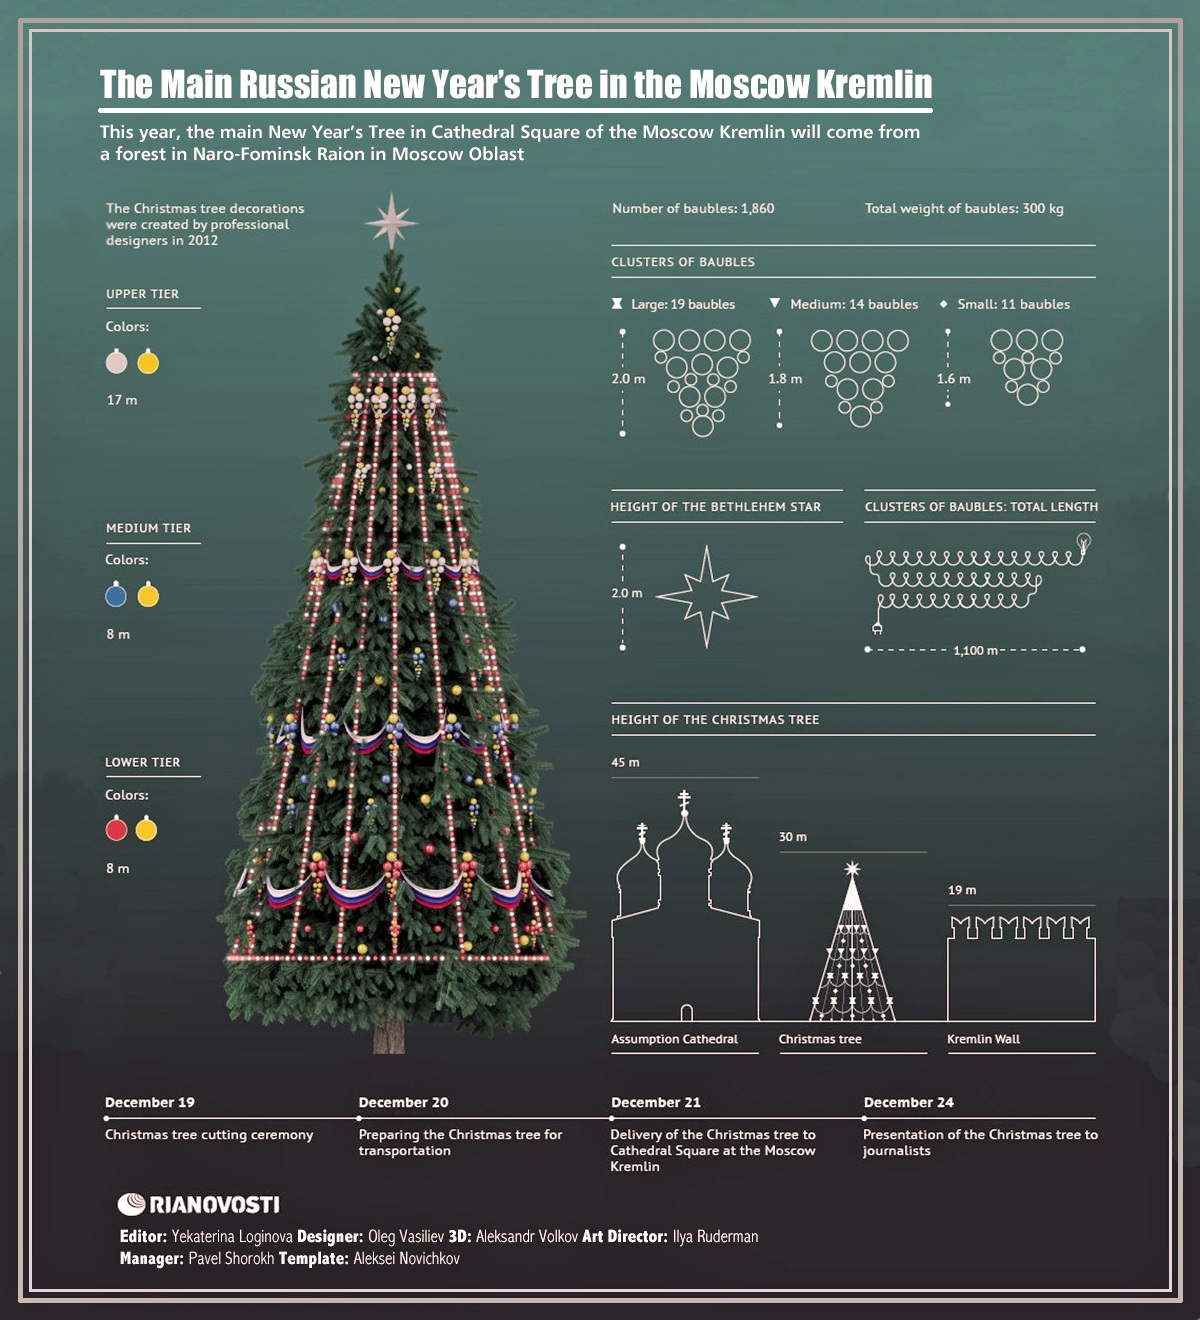 00 RIA-Novosti Infographics. The Main Russian New Year's Tree in the Moscow Kremlin. 2013